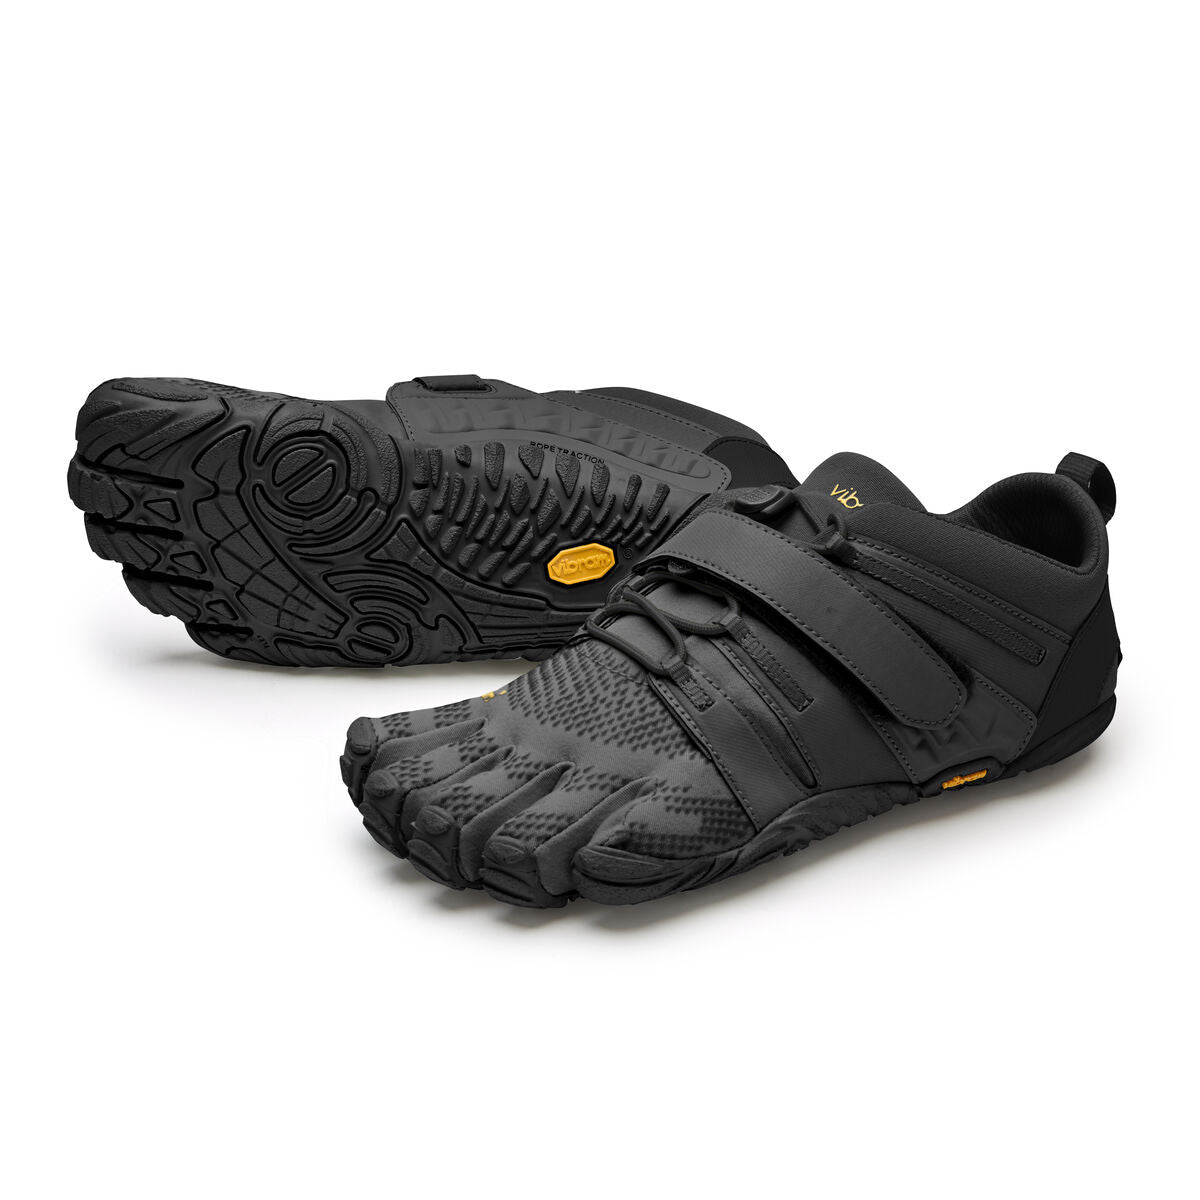 Women's Vibram Five Fingers V-Train 2.0 Fitness and Training Shoe in Black/Black from the front